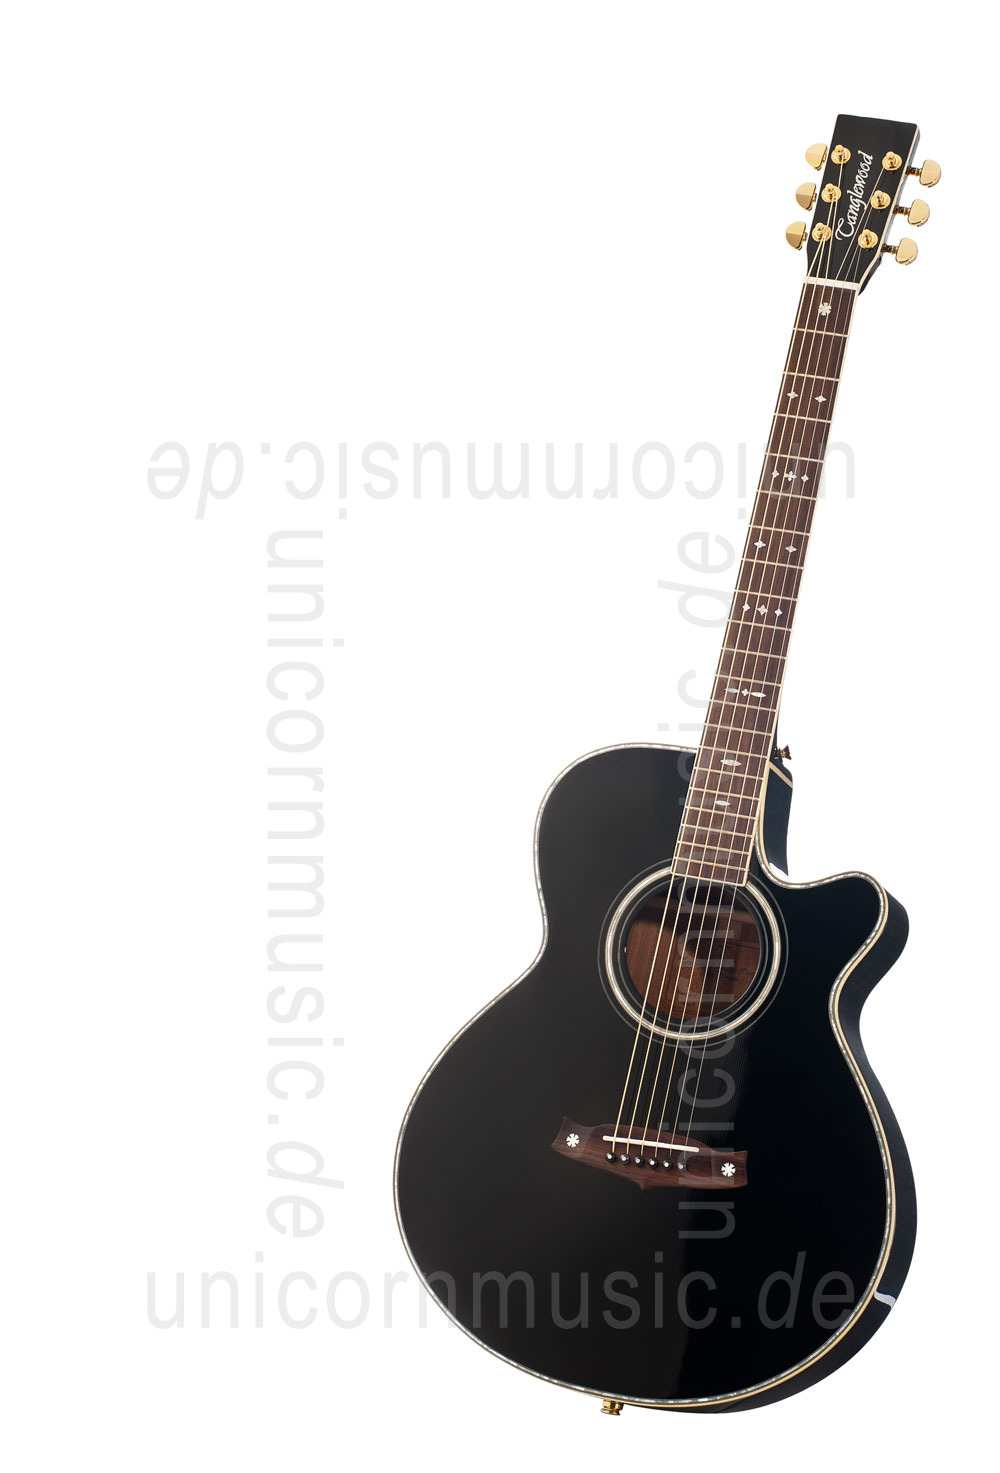 to article description / price Acoustic Guitar TANGLEWOOD TW49/BK DLX E - Sundance Series - Fishman Presys Plus EQ - Super Folk - Cutaway - solid top + back